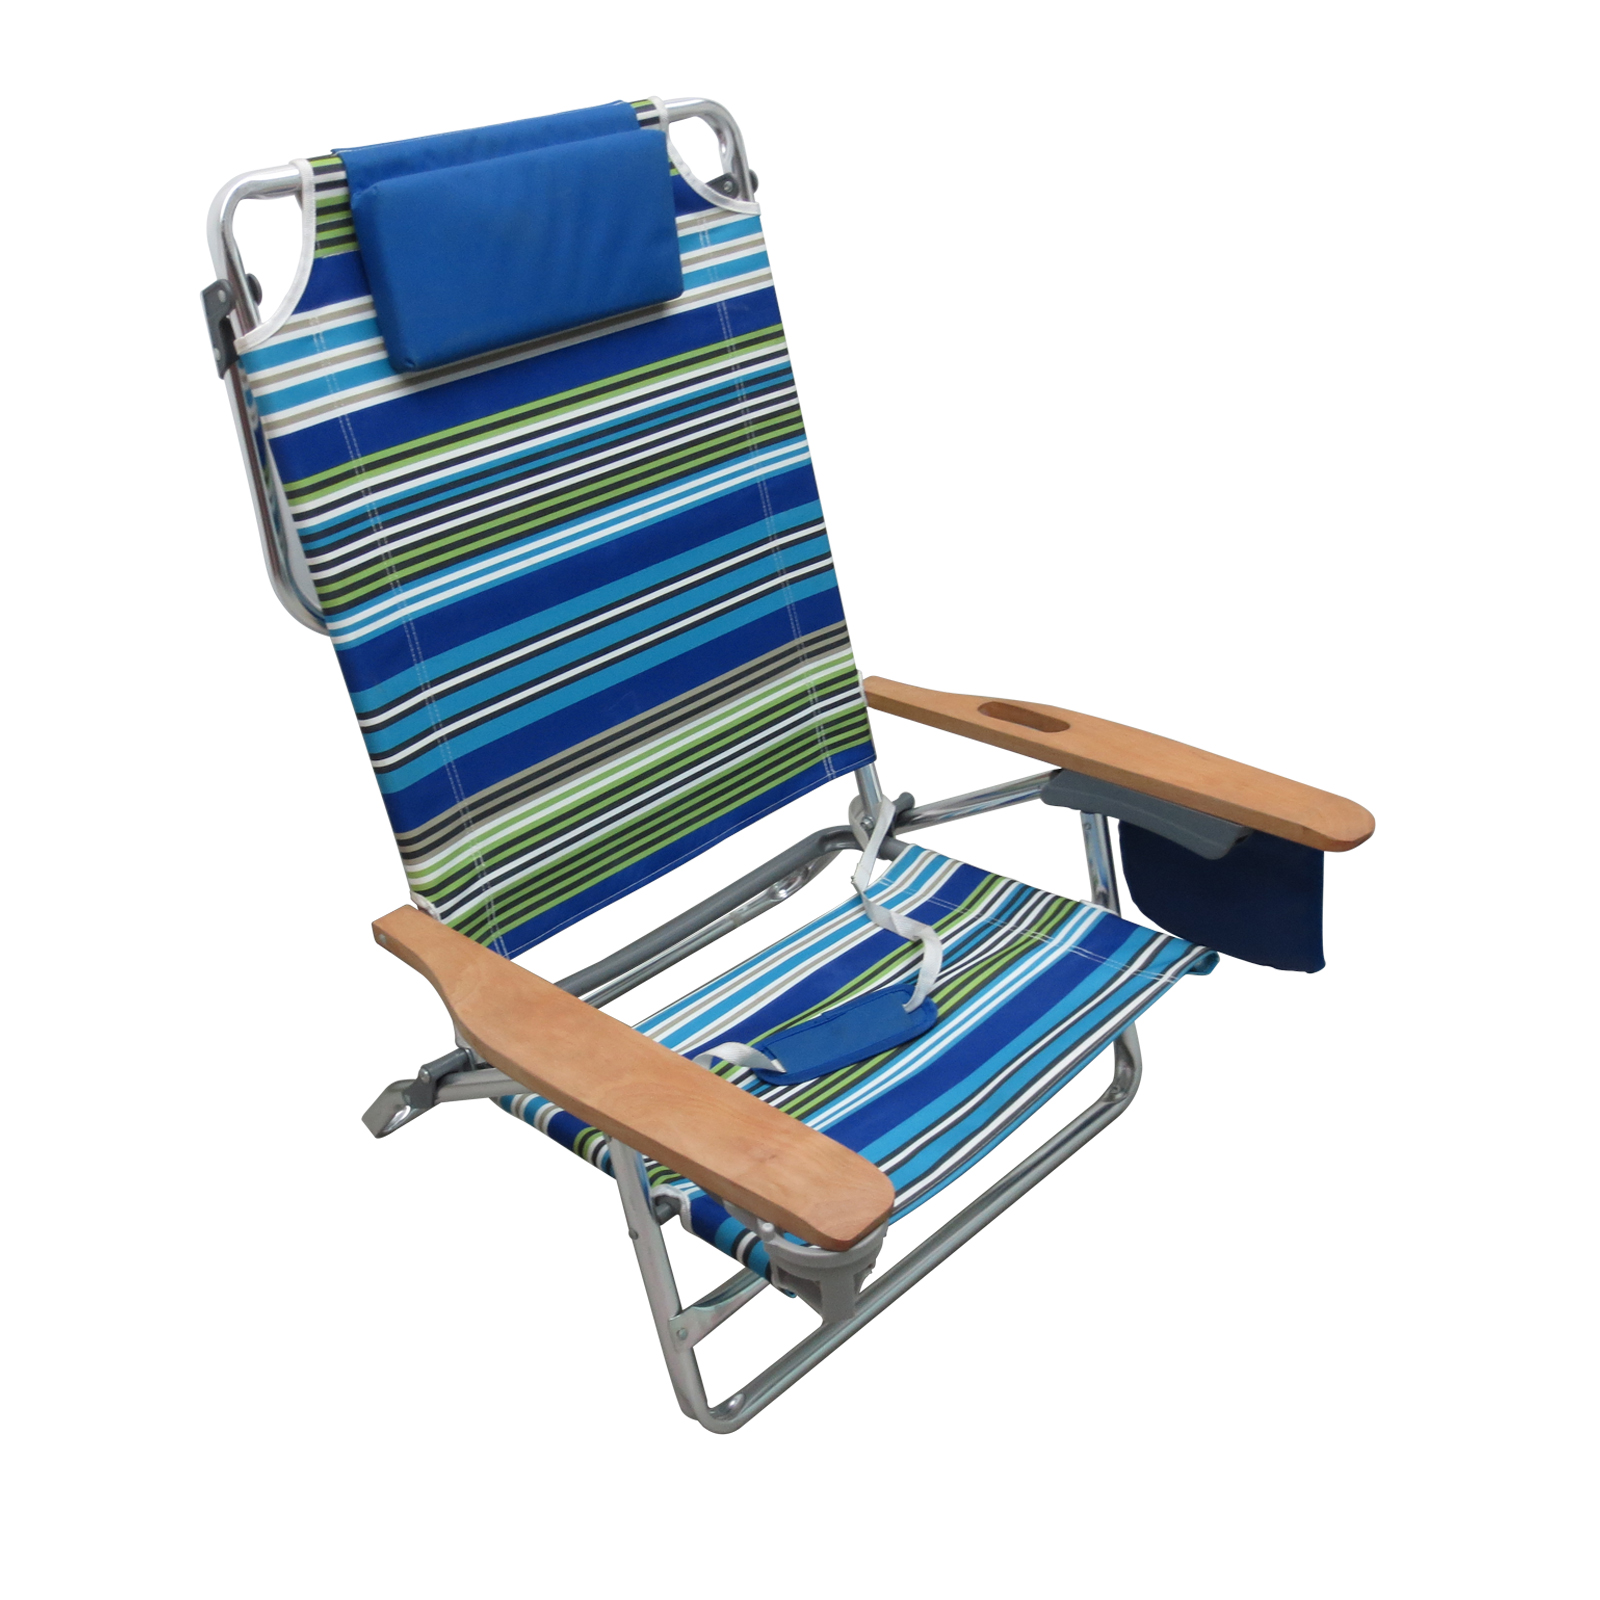 reclining beach chairs desk chair knees essential garden fully extra large 5 position limited availability alternate image